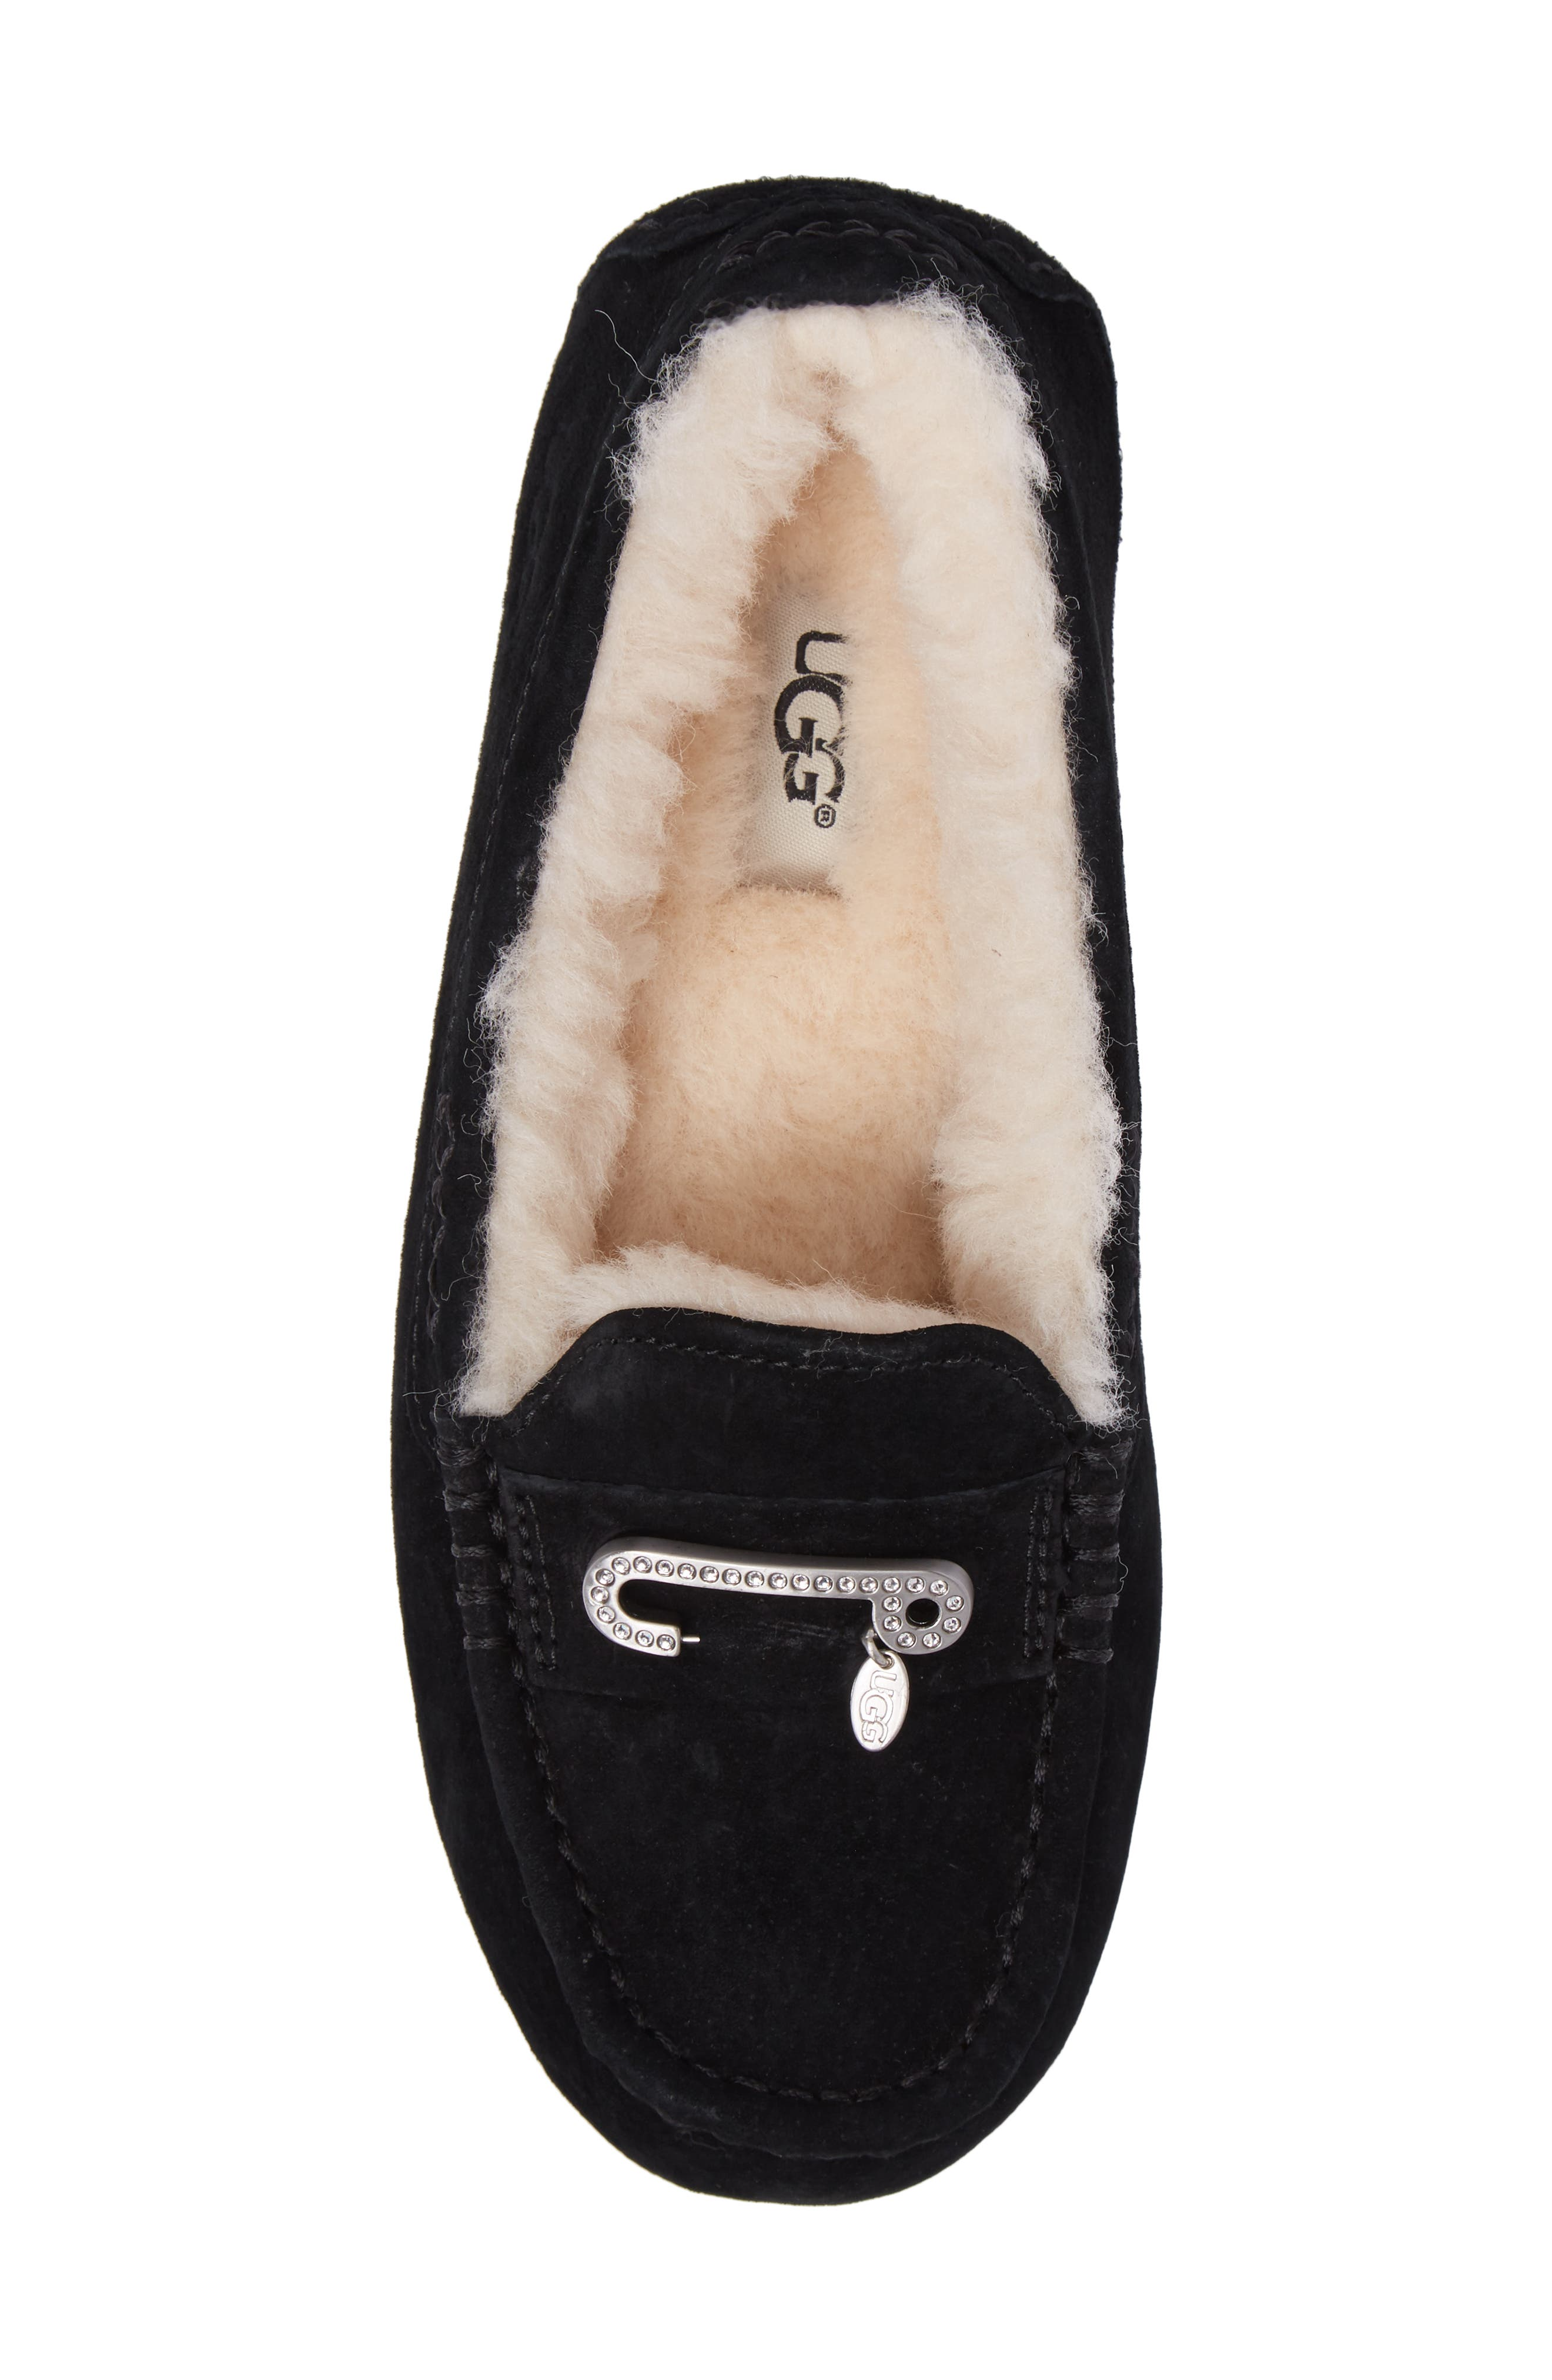 Florencia Water Resistant Silkee<sup>™</sup> Suede Slipper,                             Alternate thumbnail 5, color,                             001